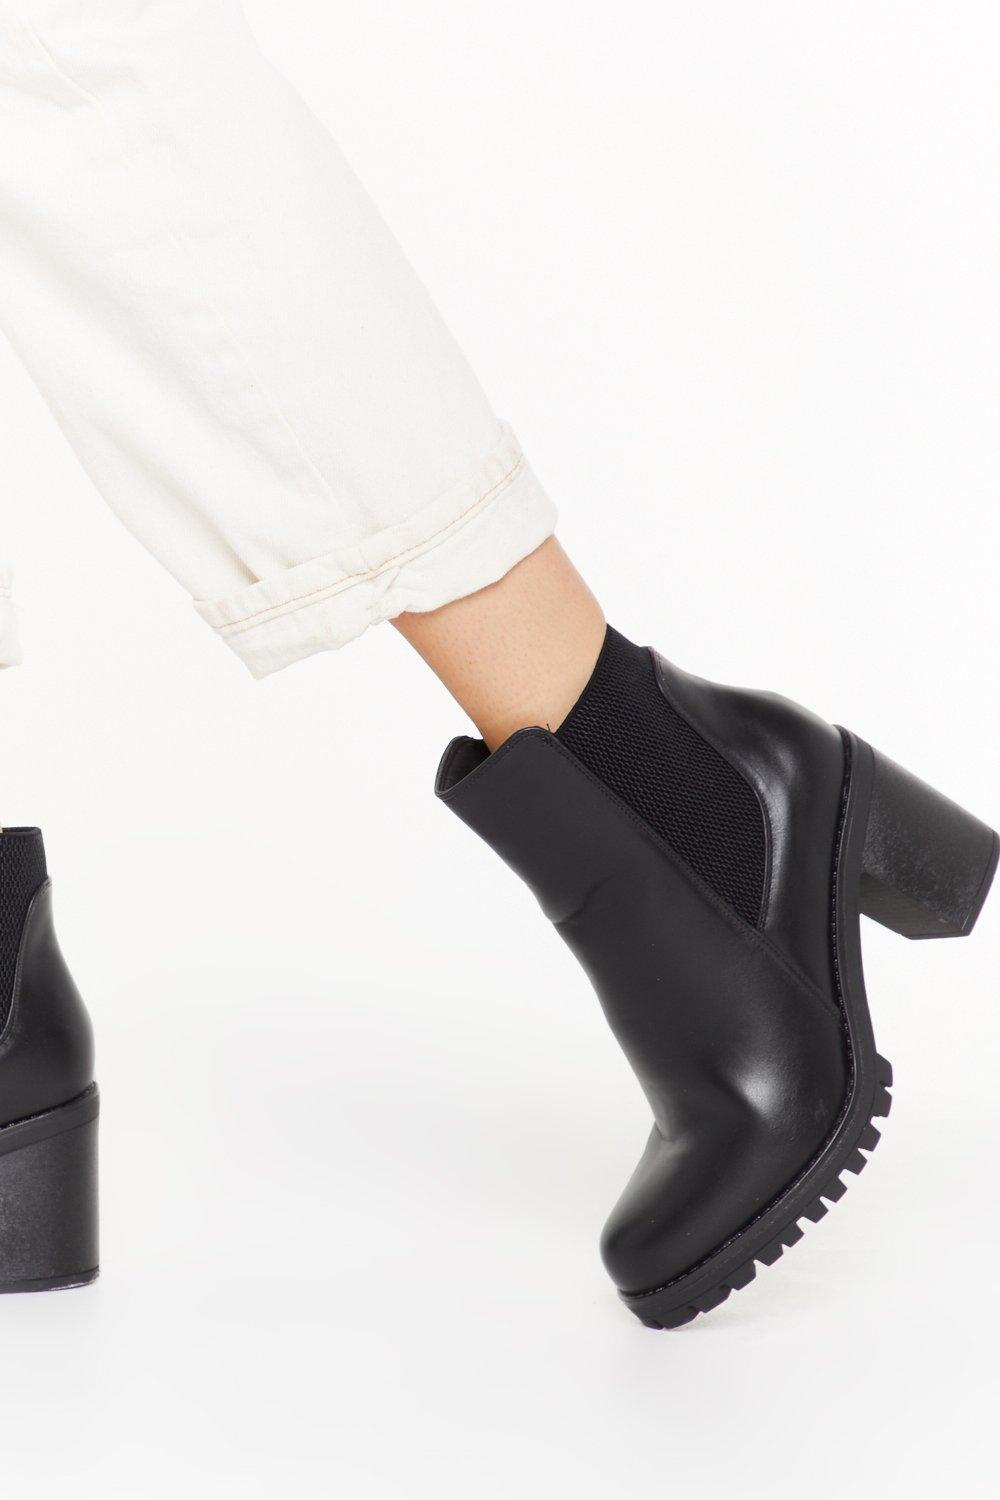 Image of Highway Toe Hell Faux Leather Heeled Boots